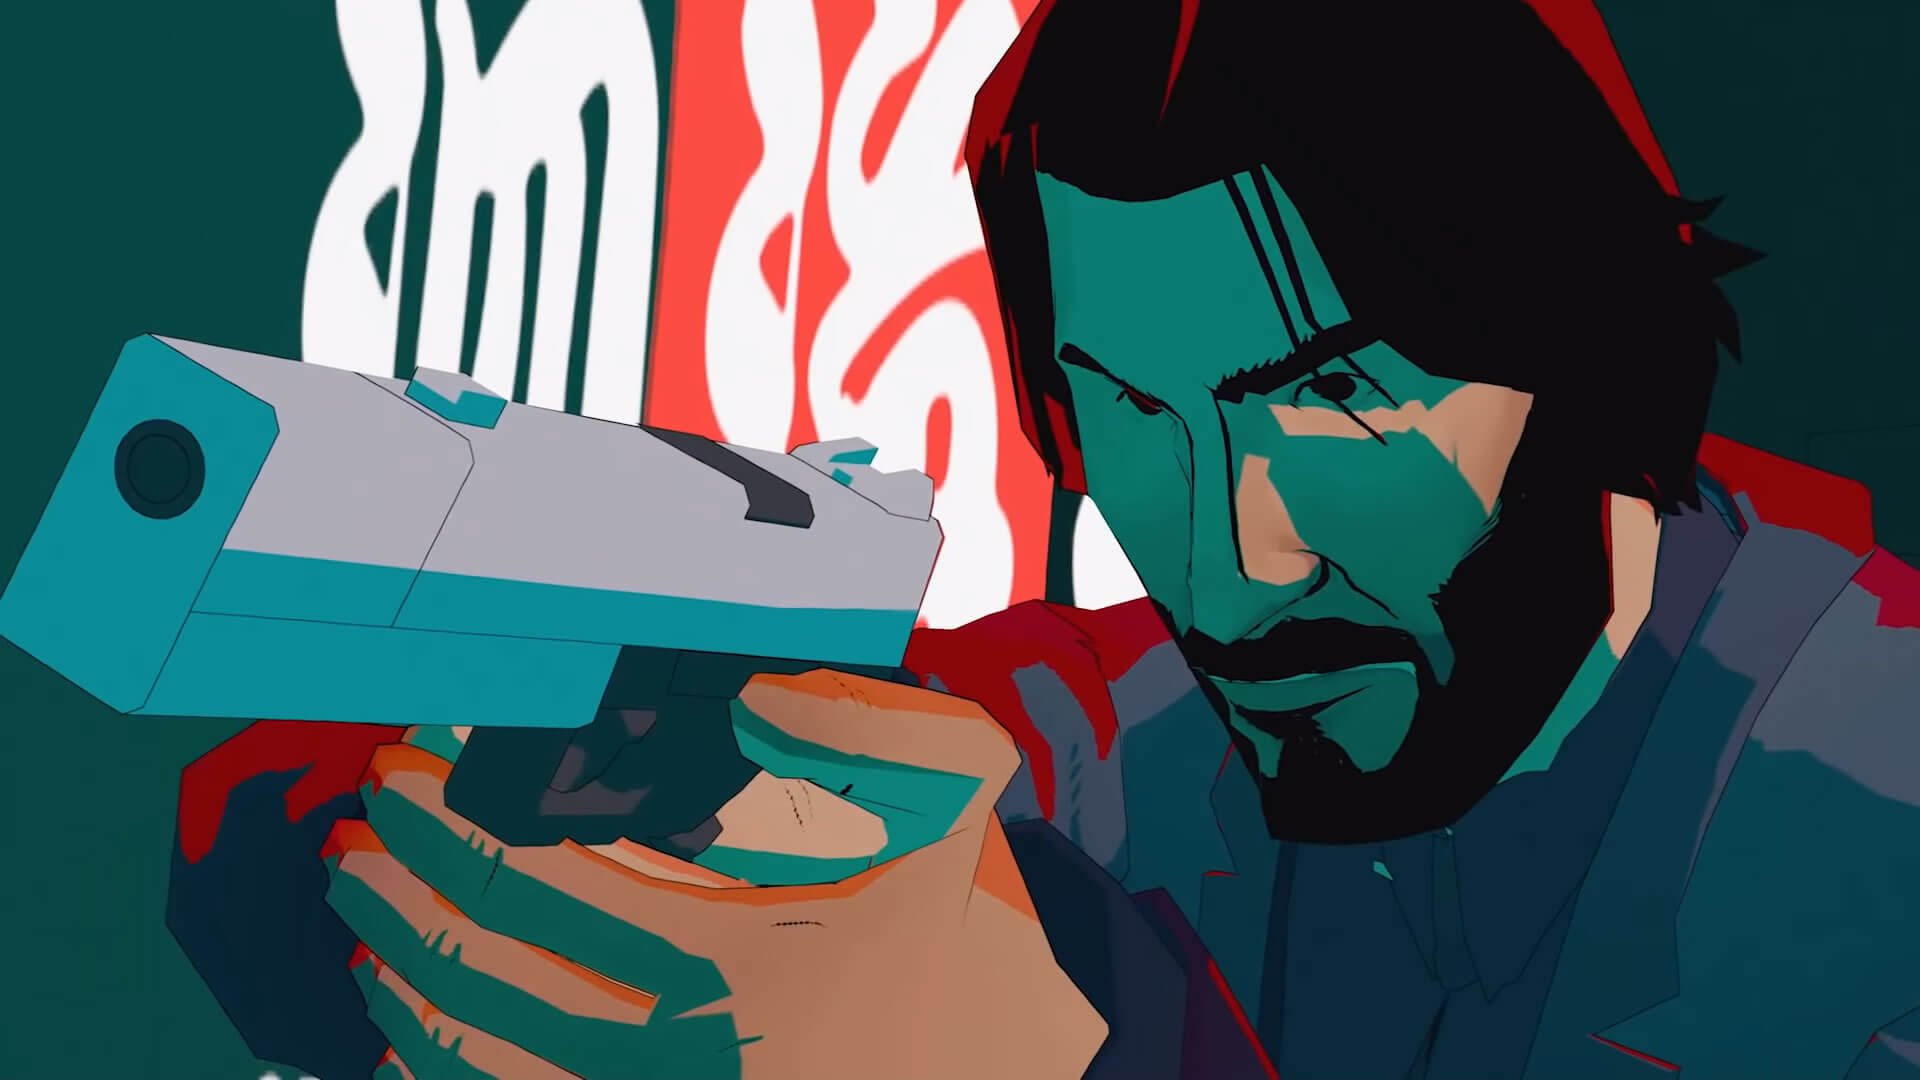 Bithell Games-developed John Wick Hex announced for consoles, PC